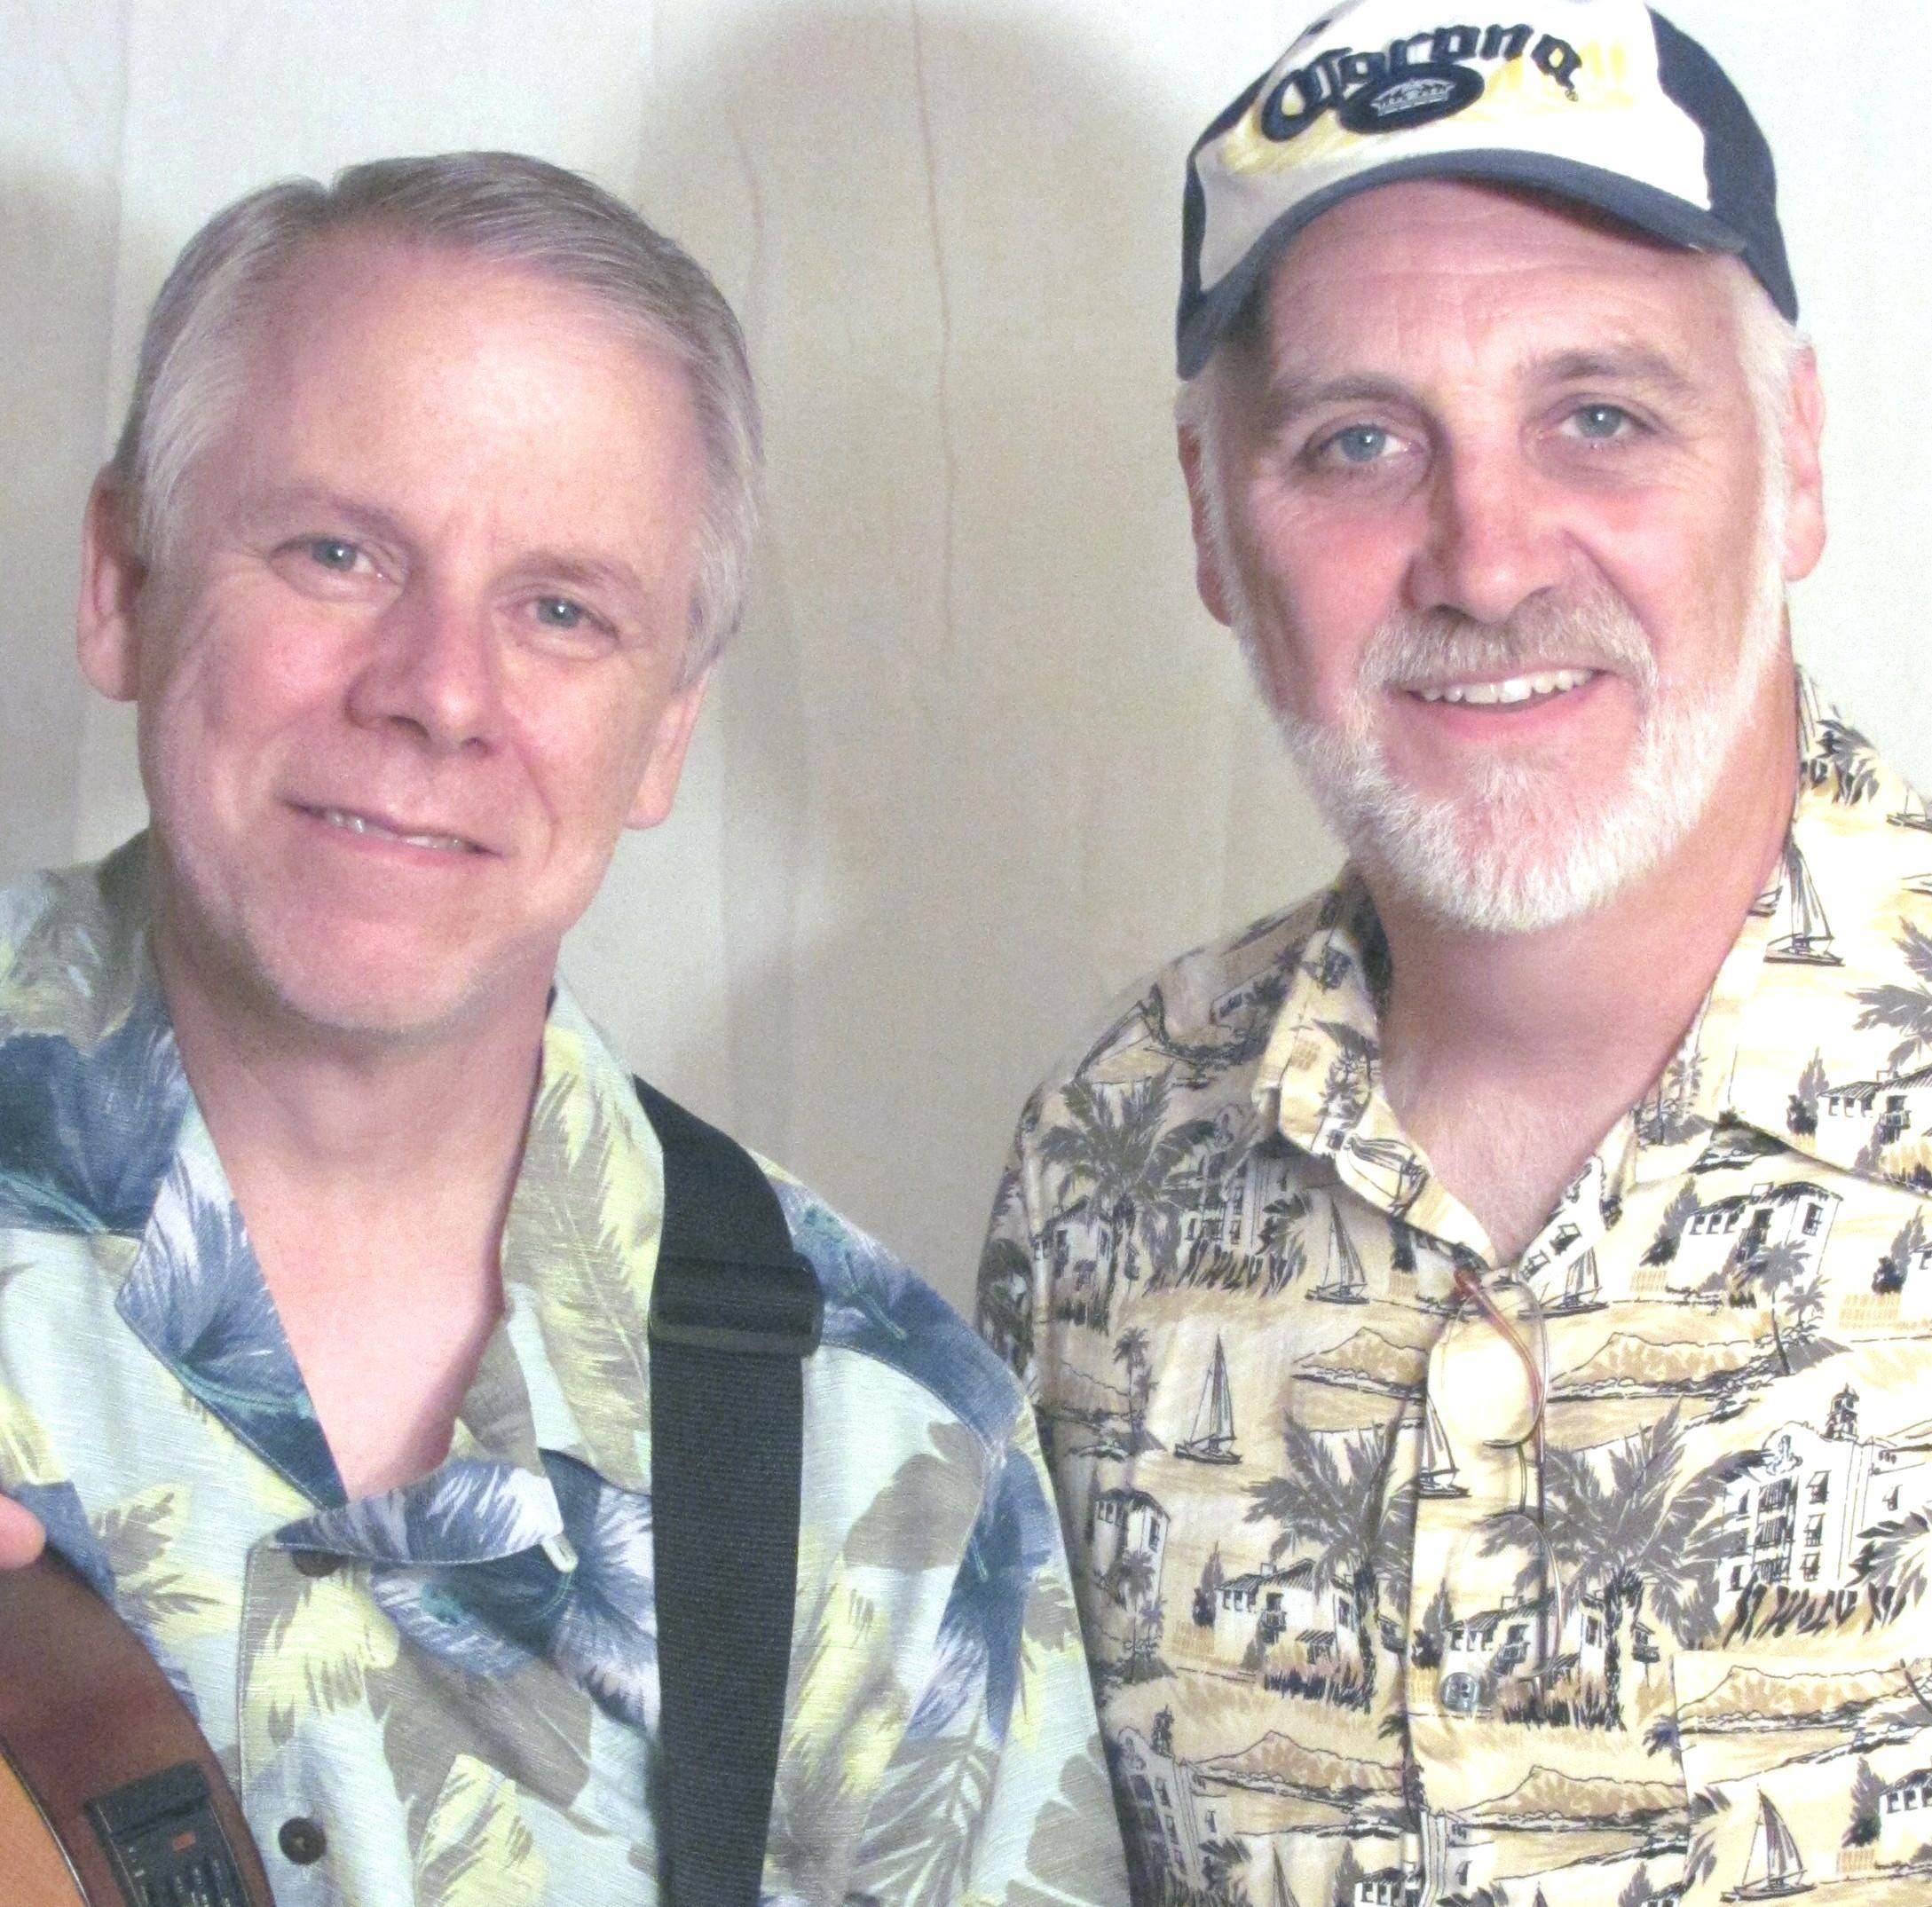 Hometown duo Drift Away, with Brien Prenevost and Kevin Miller, will open Coon Creek Country Days' musical entertainment at 8 p.m. Thursday.